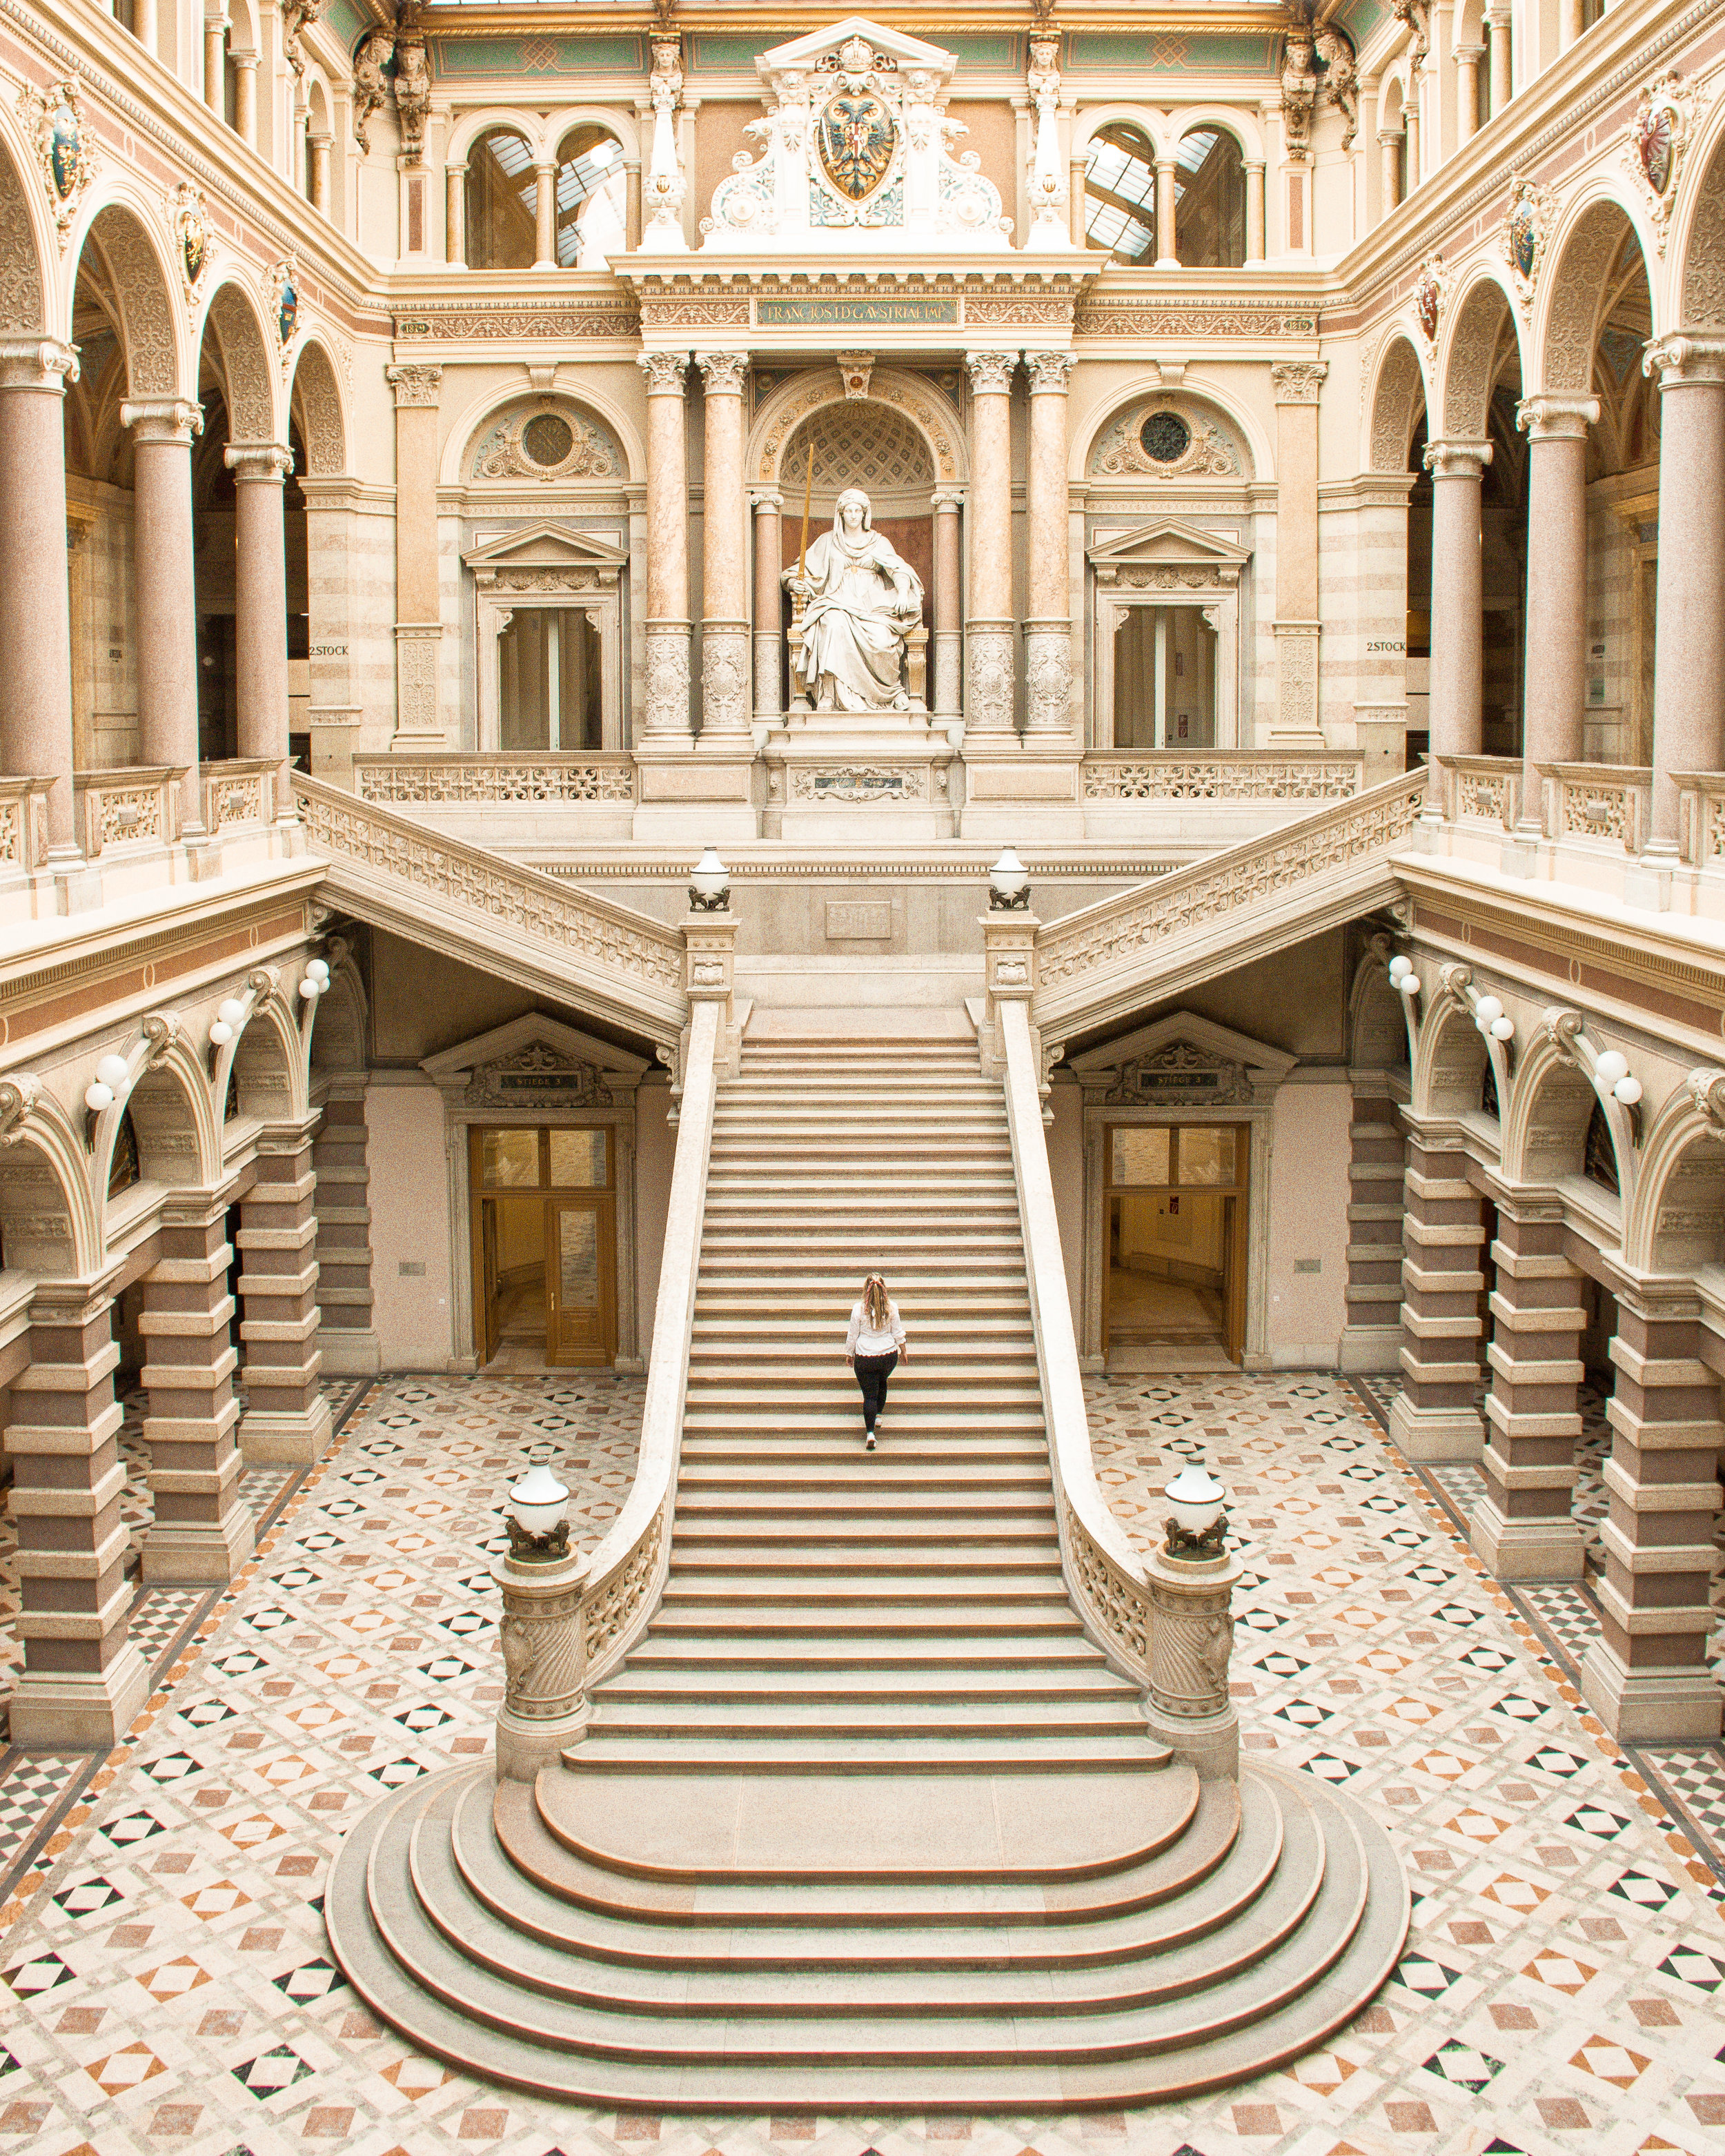 The gorgeous Palace of Justice is truly a work of art, and is a quiet respite from the busy city outside.